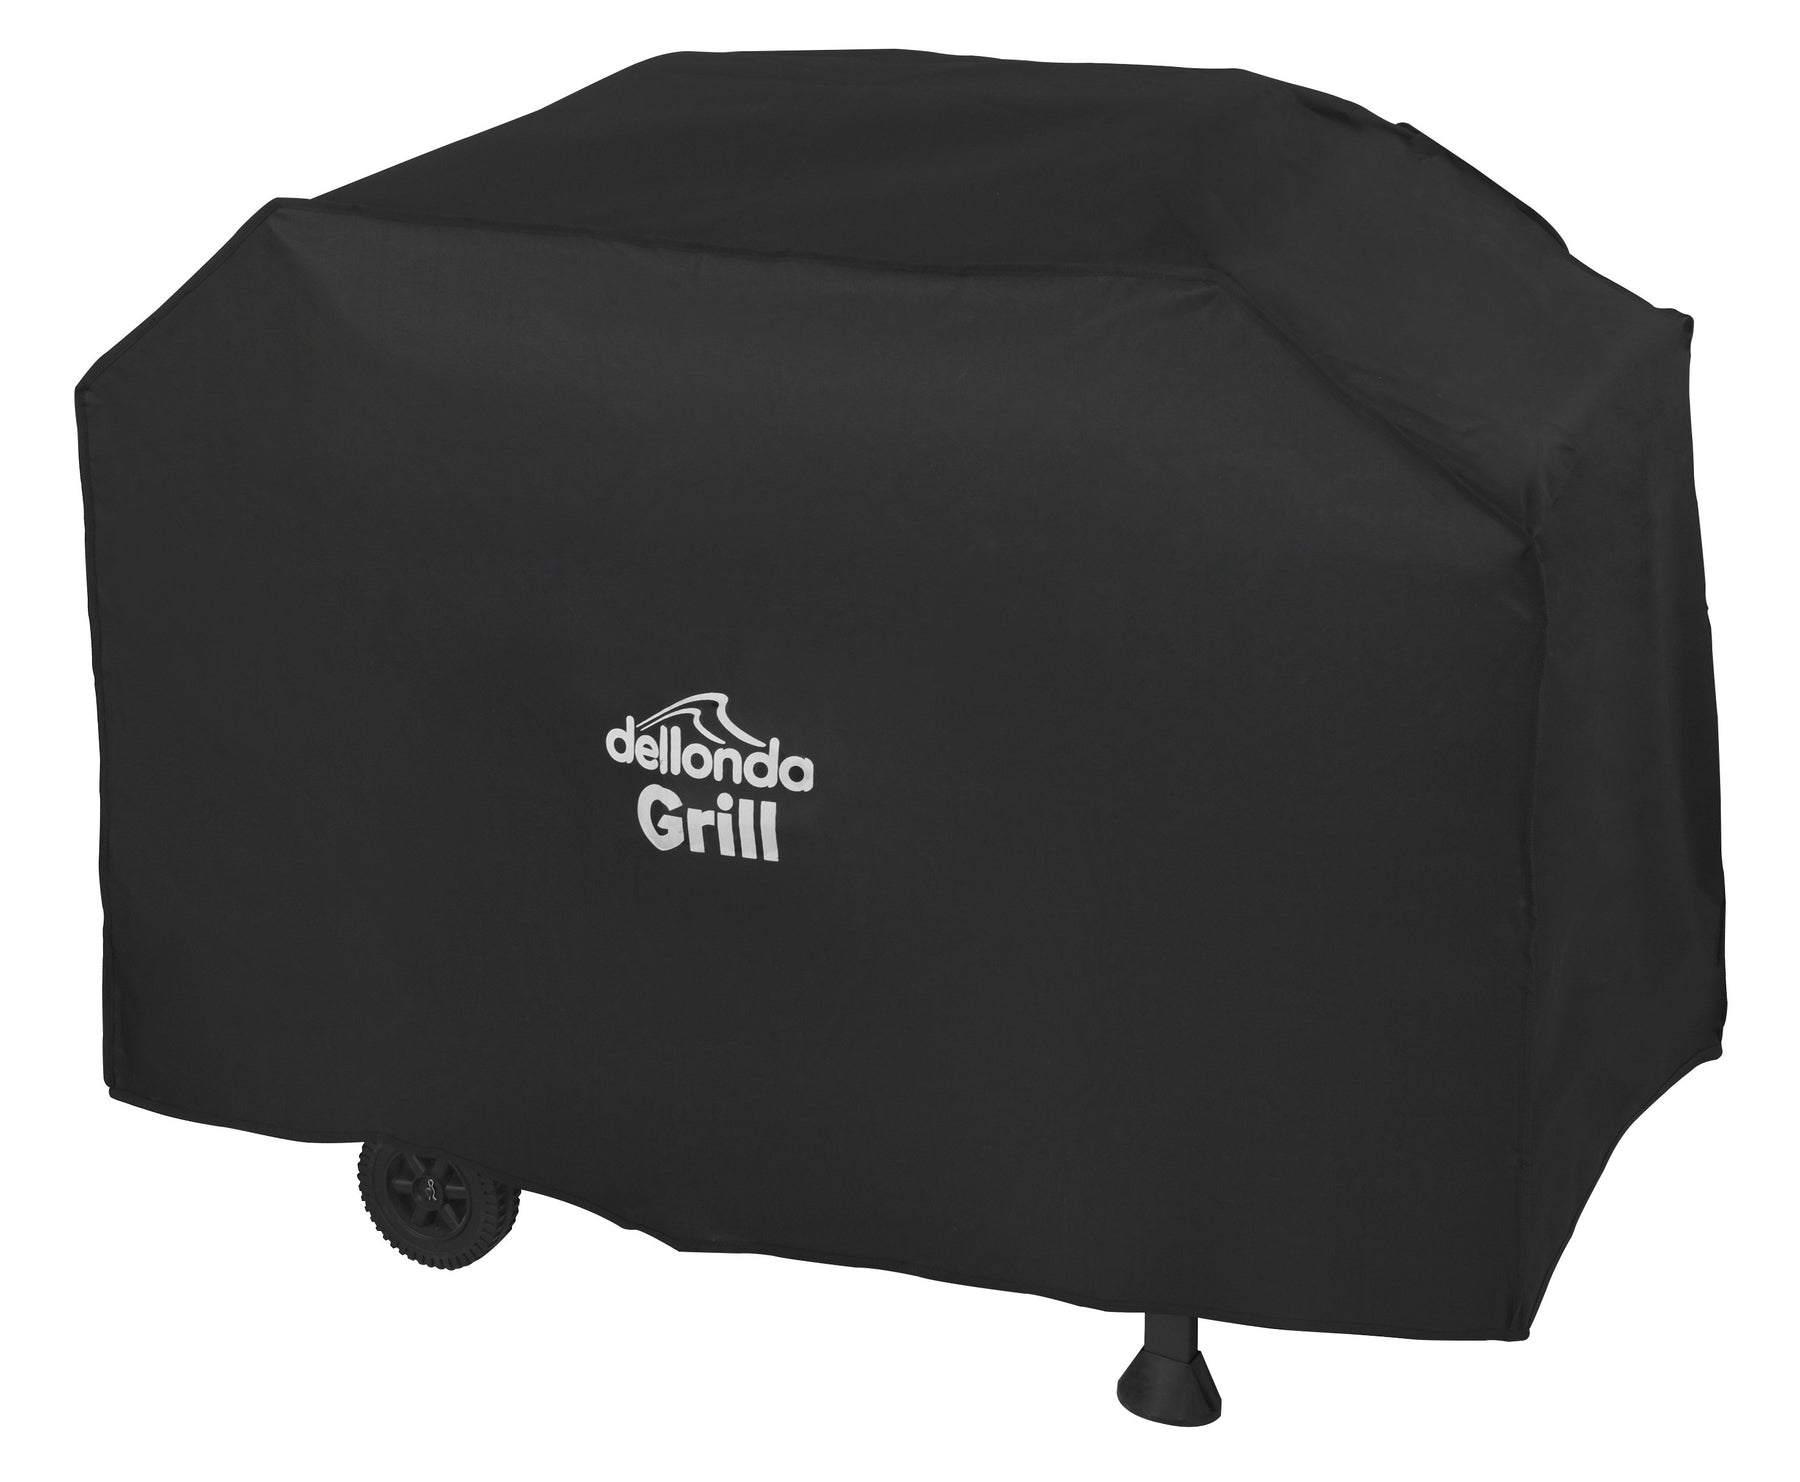 DG19 - Universal PVC BBQ Cover for Barbecues, Heavy-Duty & Waterproof - 1325mm x 1130mm (W x H)